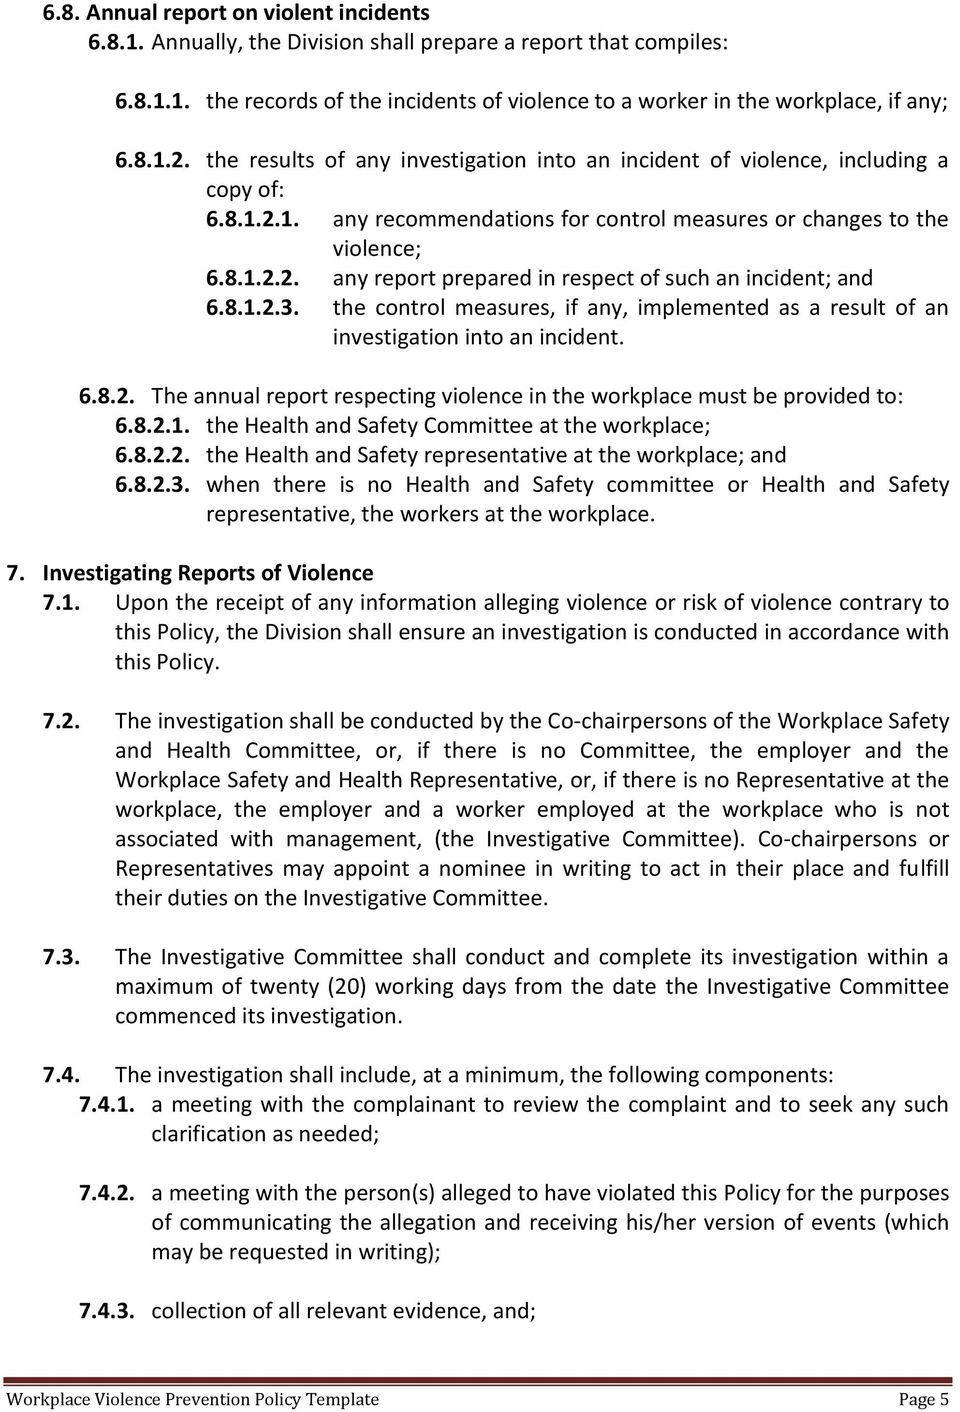 8.1.2.3. the control measures, if any, implemented as a result of an investigation into an incident. 6.8.2. The annual report respecting violence in the workplace must be provided to: 6.8.2.1. the Health and Safety Committee at the workplace; 6.